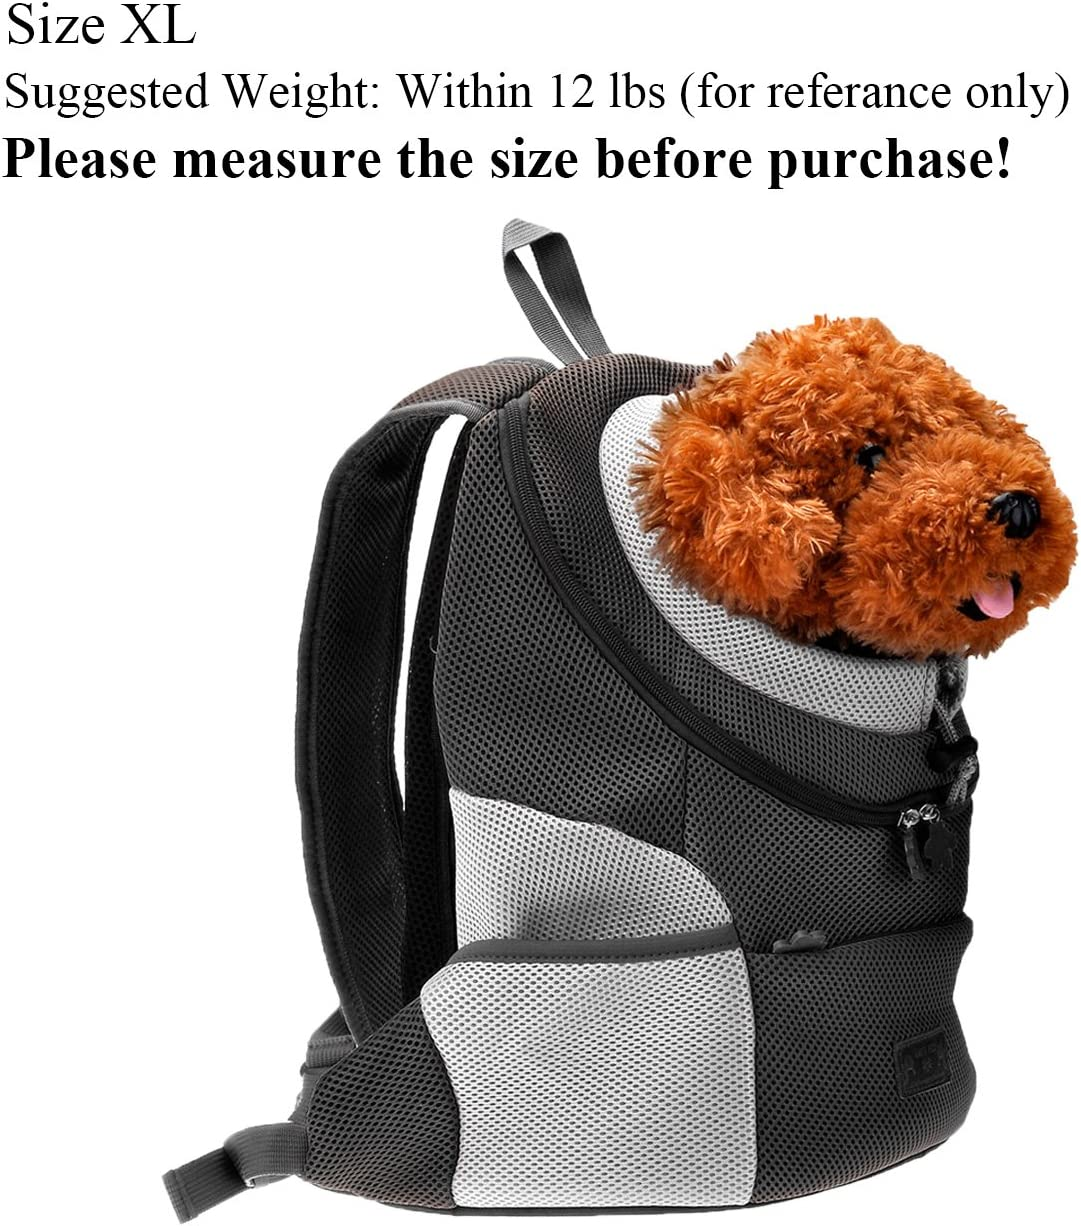 CozyCabin Latest Style Comfortable Dog Cat Pet Carrier Backpack Travel Carrier Bag Front for Small Dogs Carrier Bike Hiking Outdoor